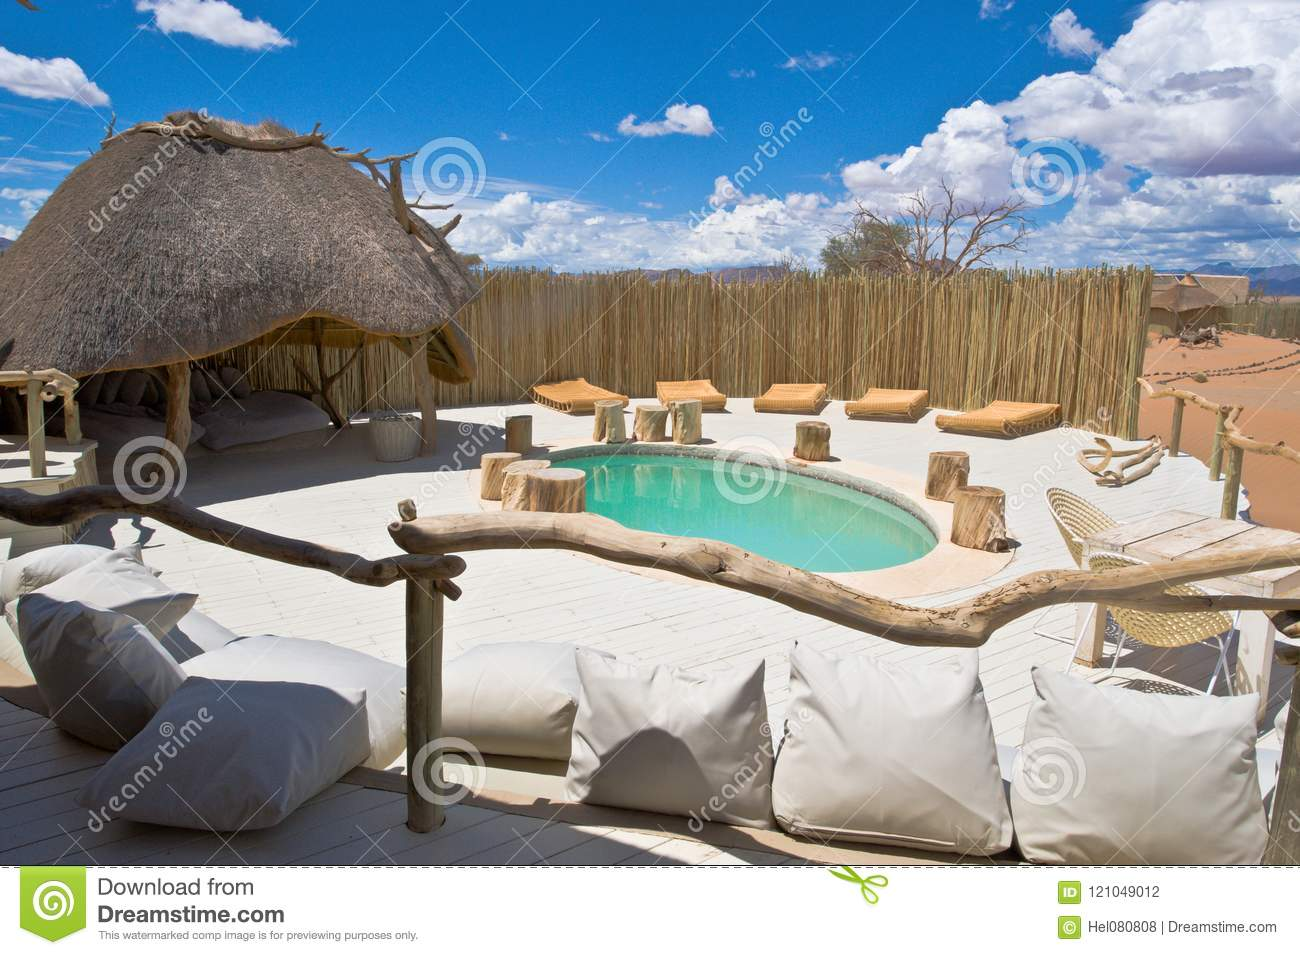 Pool Of A Luxury Lodge Namib Naukluft Park Namibia Stock